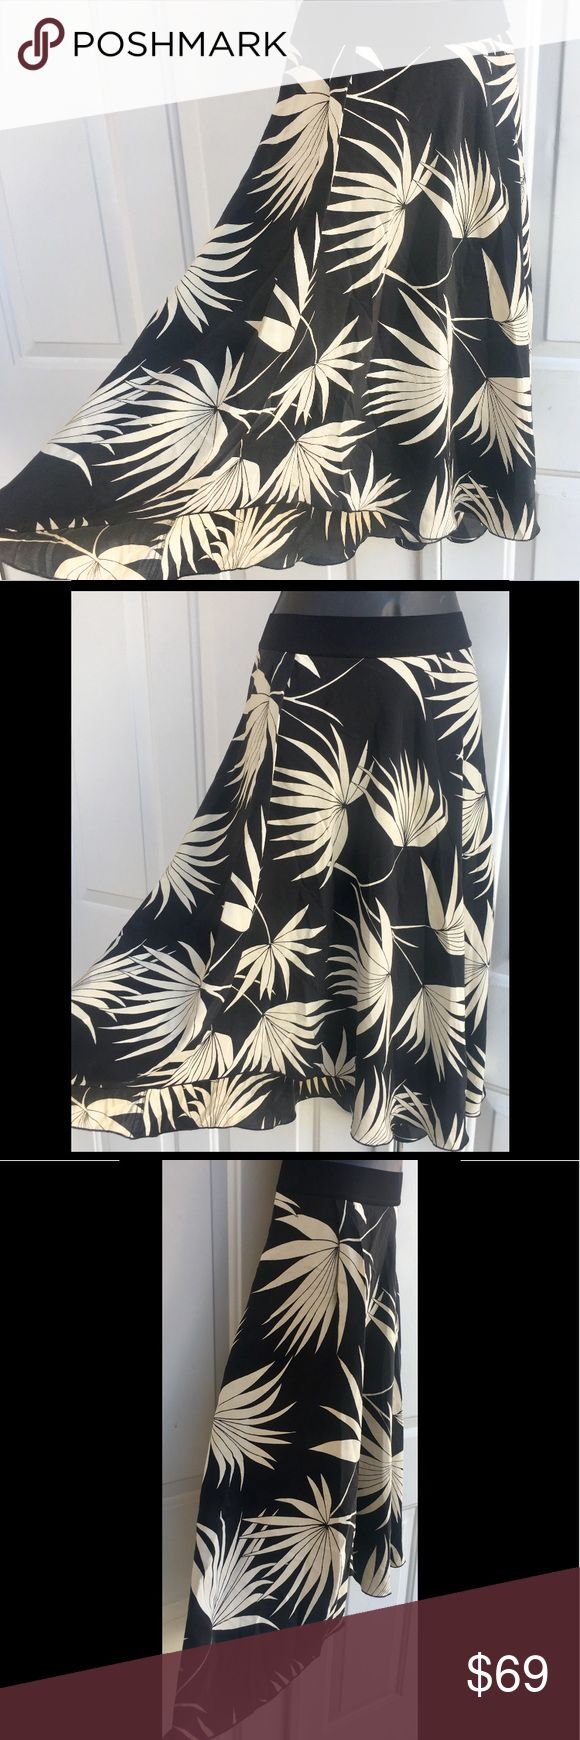 Tommy Bahama 100% Silk Tropical Floral Skirt M L Tommy Bahama. Black and White Tropical Floral Print Hi Lo Swing Flowy Skirt. 100% Silk. Elasticized waistband. Size tag reads Medium. Would fit a large as well as the waist band is stretchy. This skirt makes you want to twirl! So Flowy and so silky soft! Brand New Tommy Bahama Skirts High Low